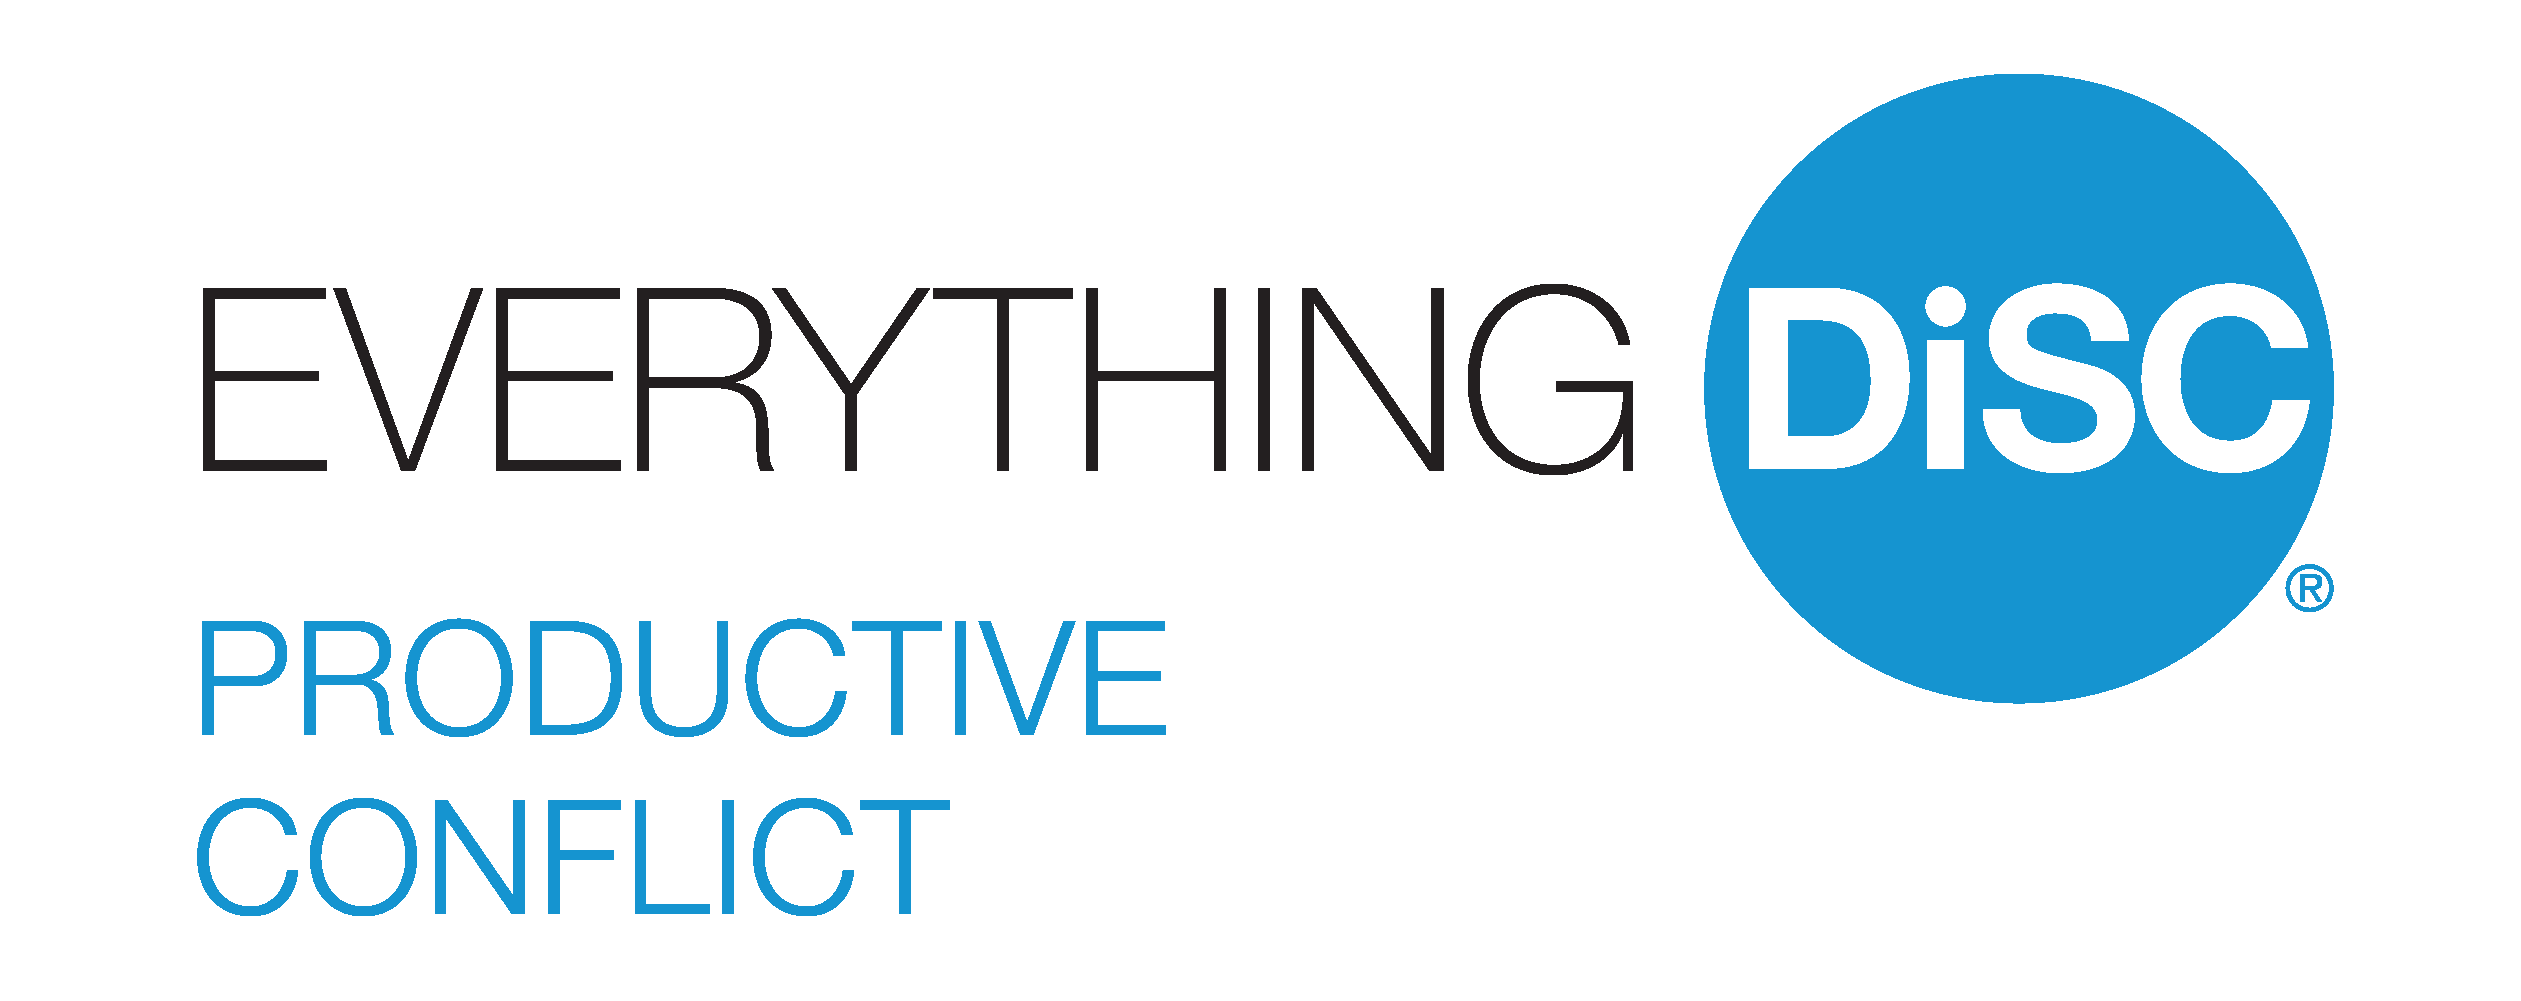 EVERYTHING DiSC Productive Conflict